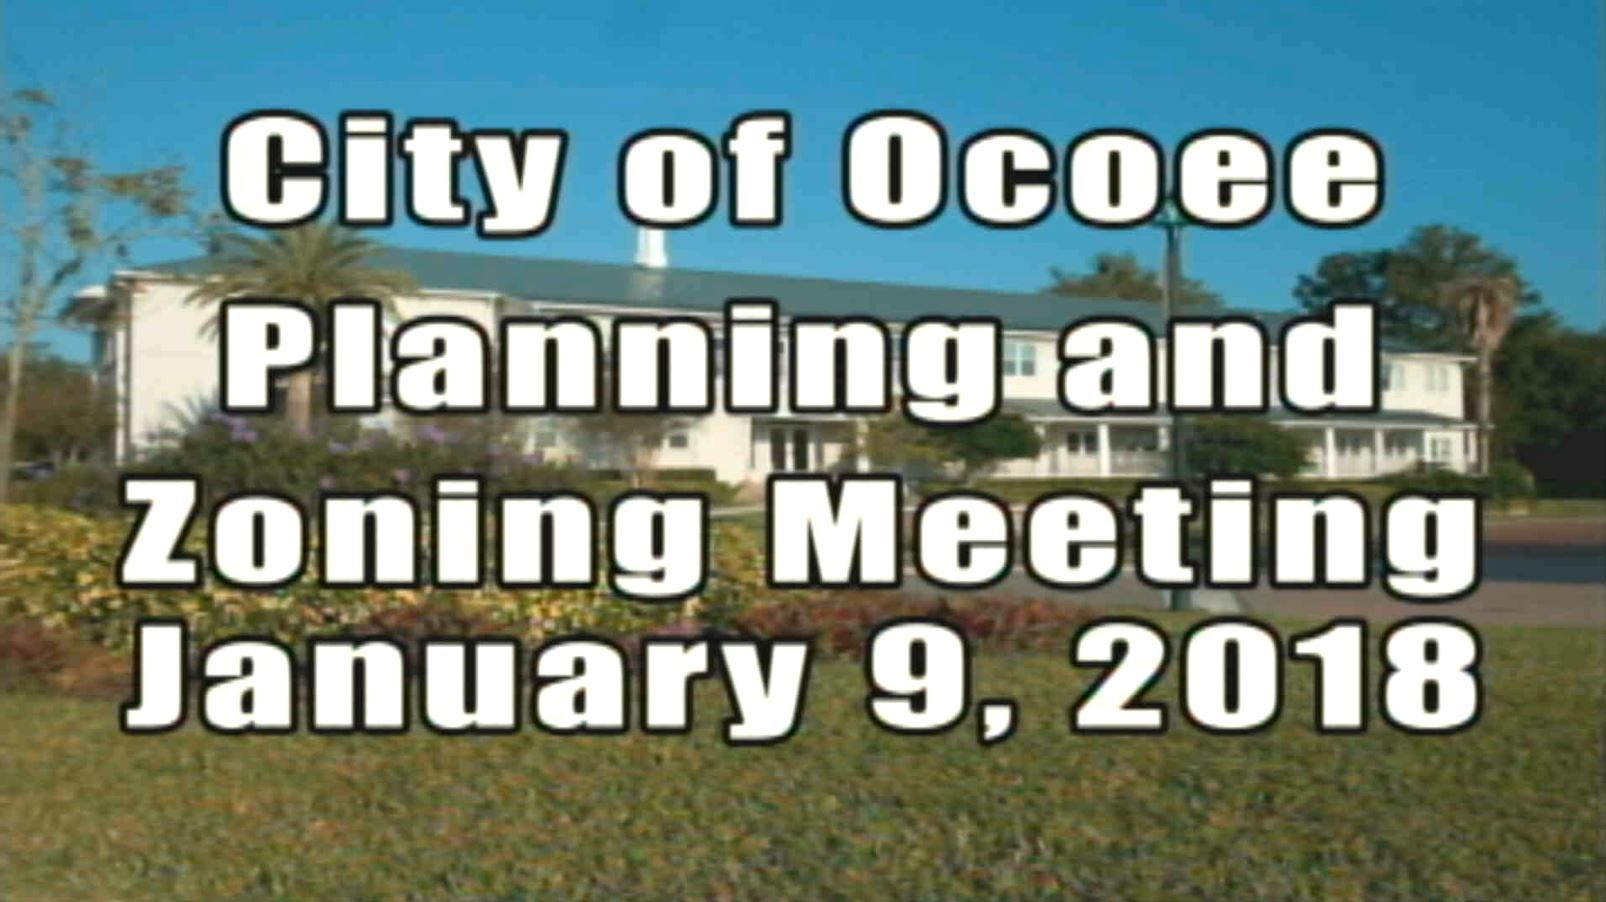 Planning & Zoning Meeting 1.9.18 Banner